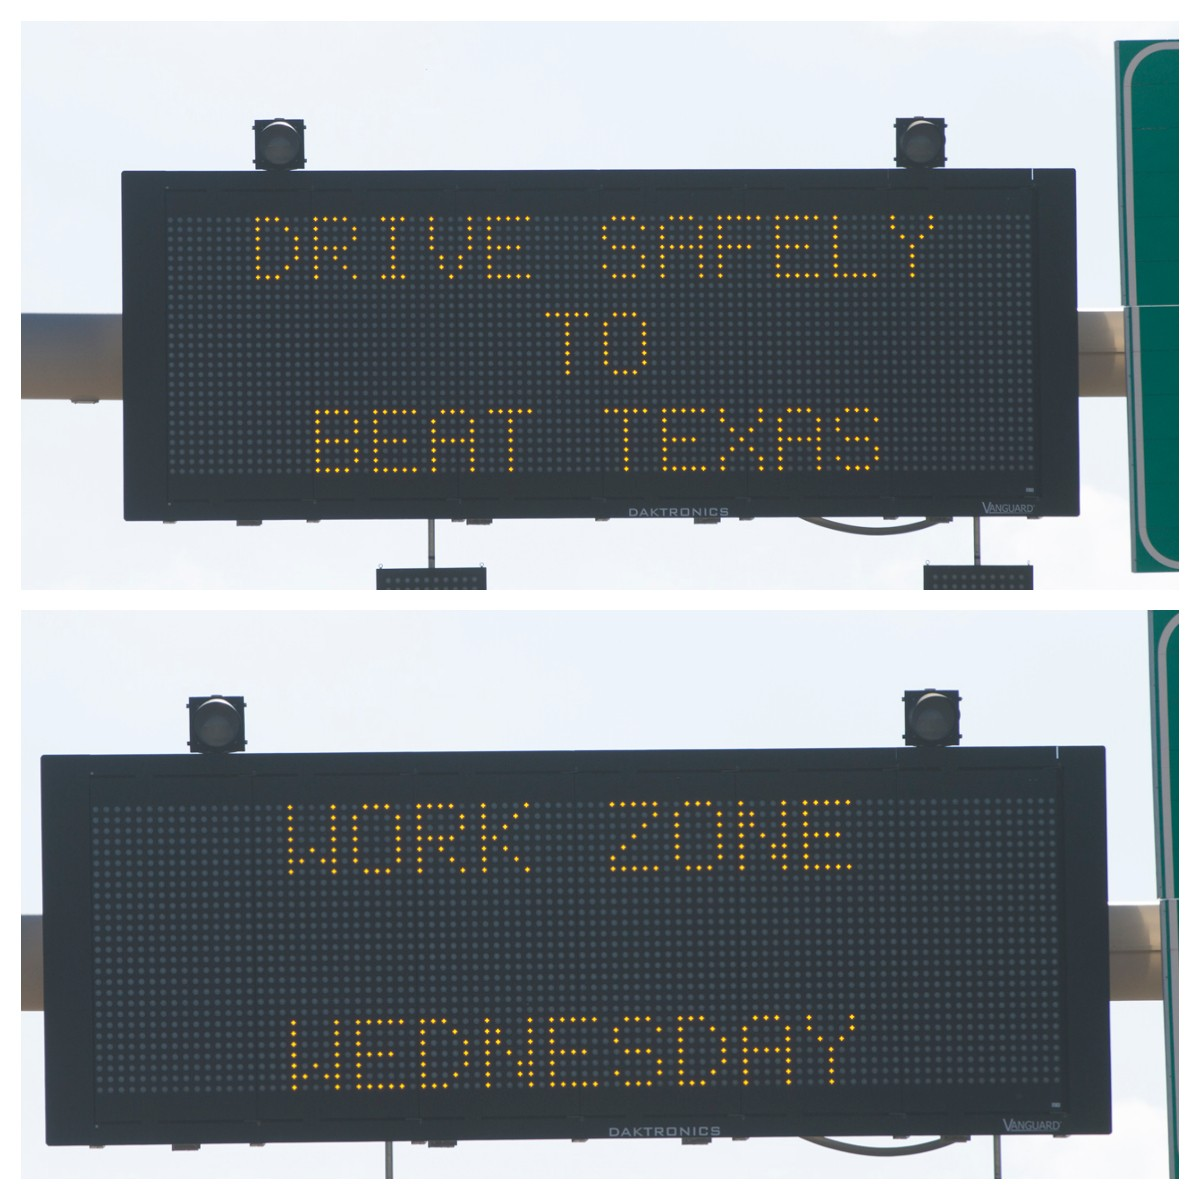 /content/dam/ok/en/odot/images/message-signs/10.5.16.jpg